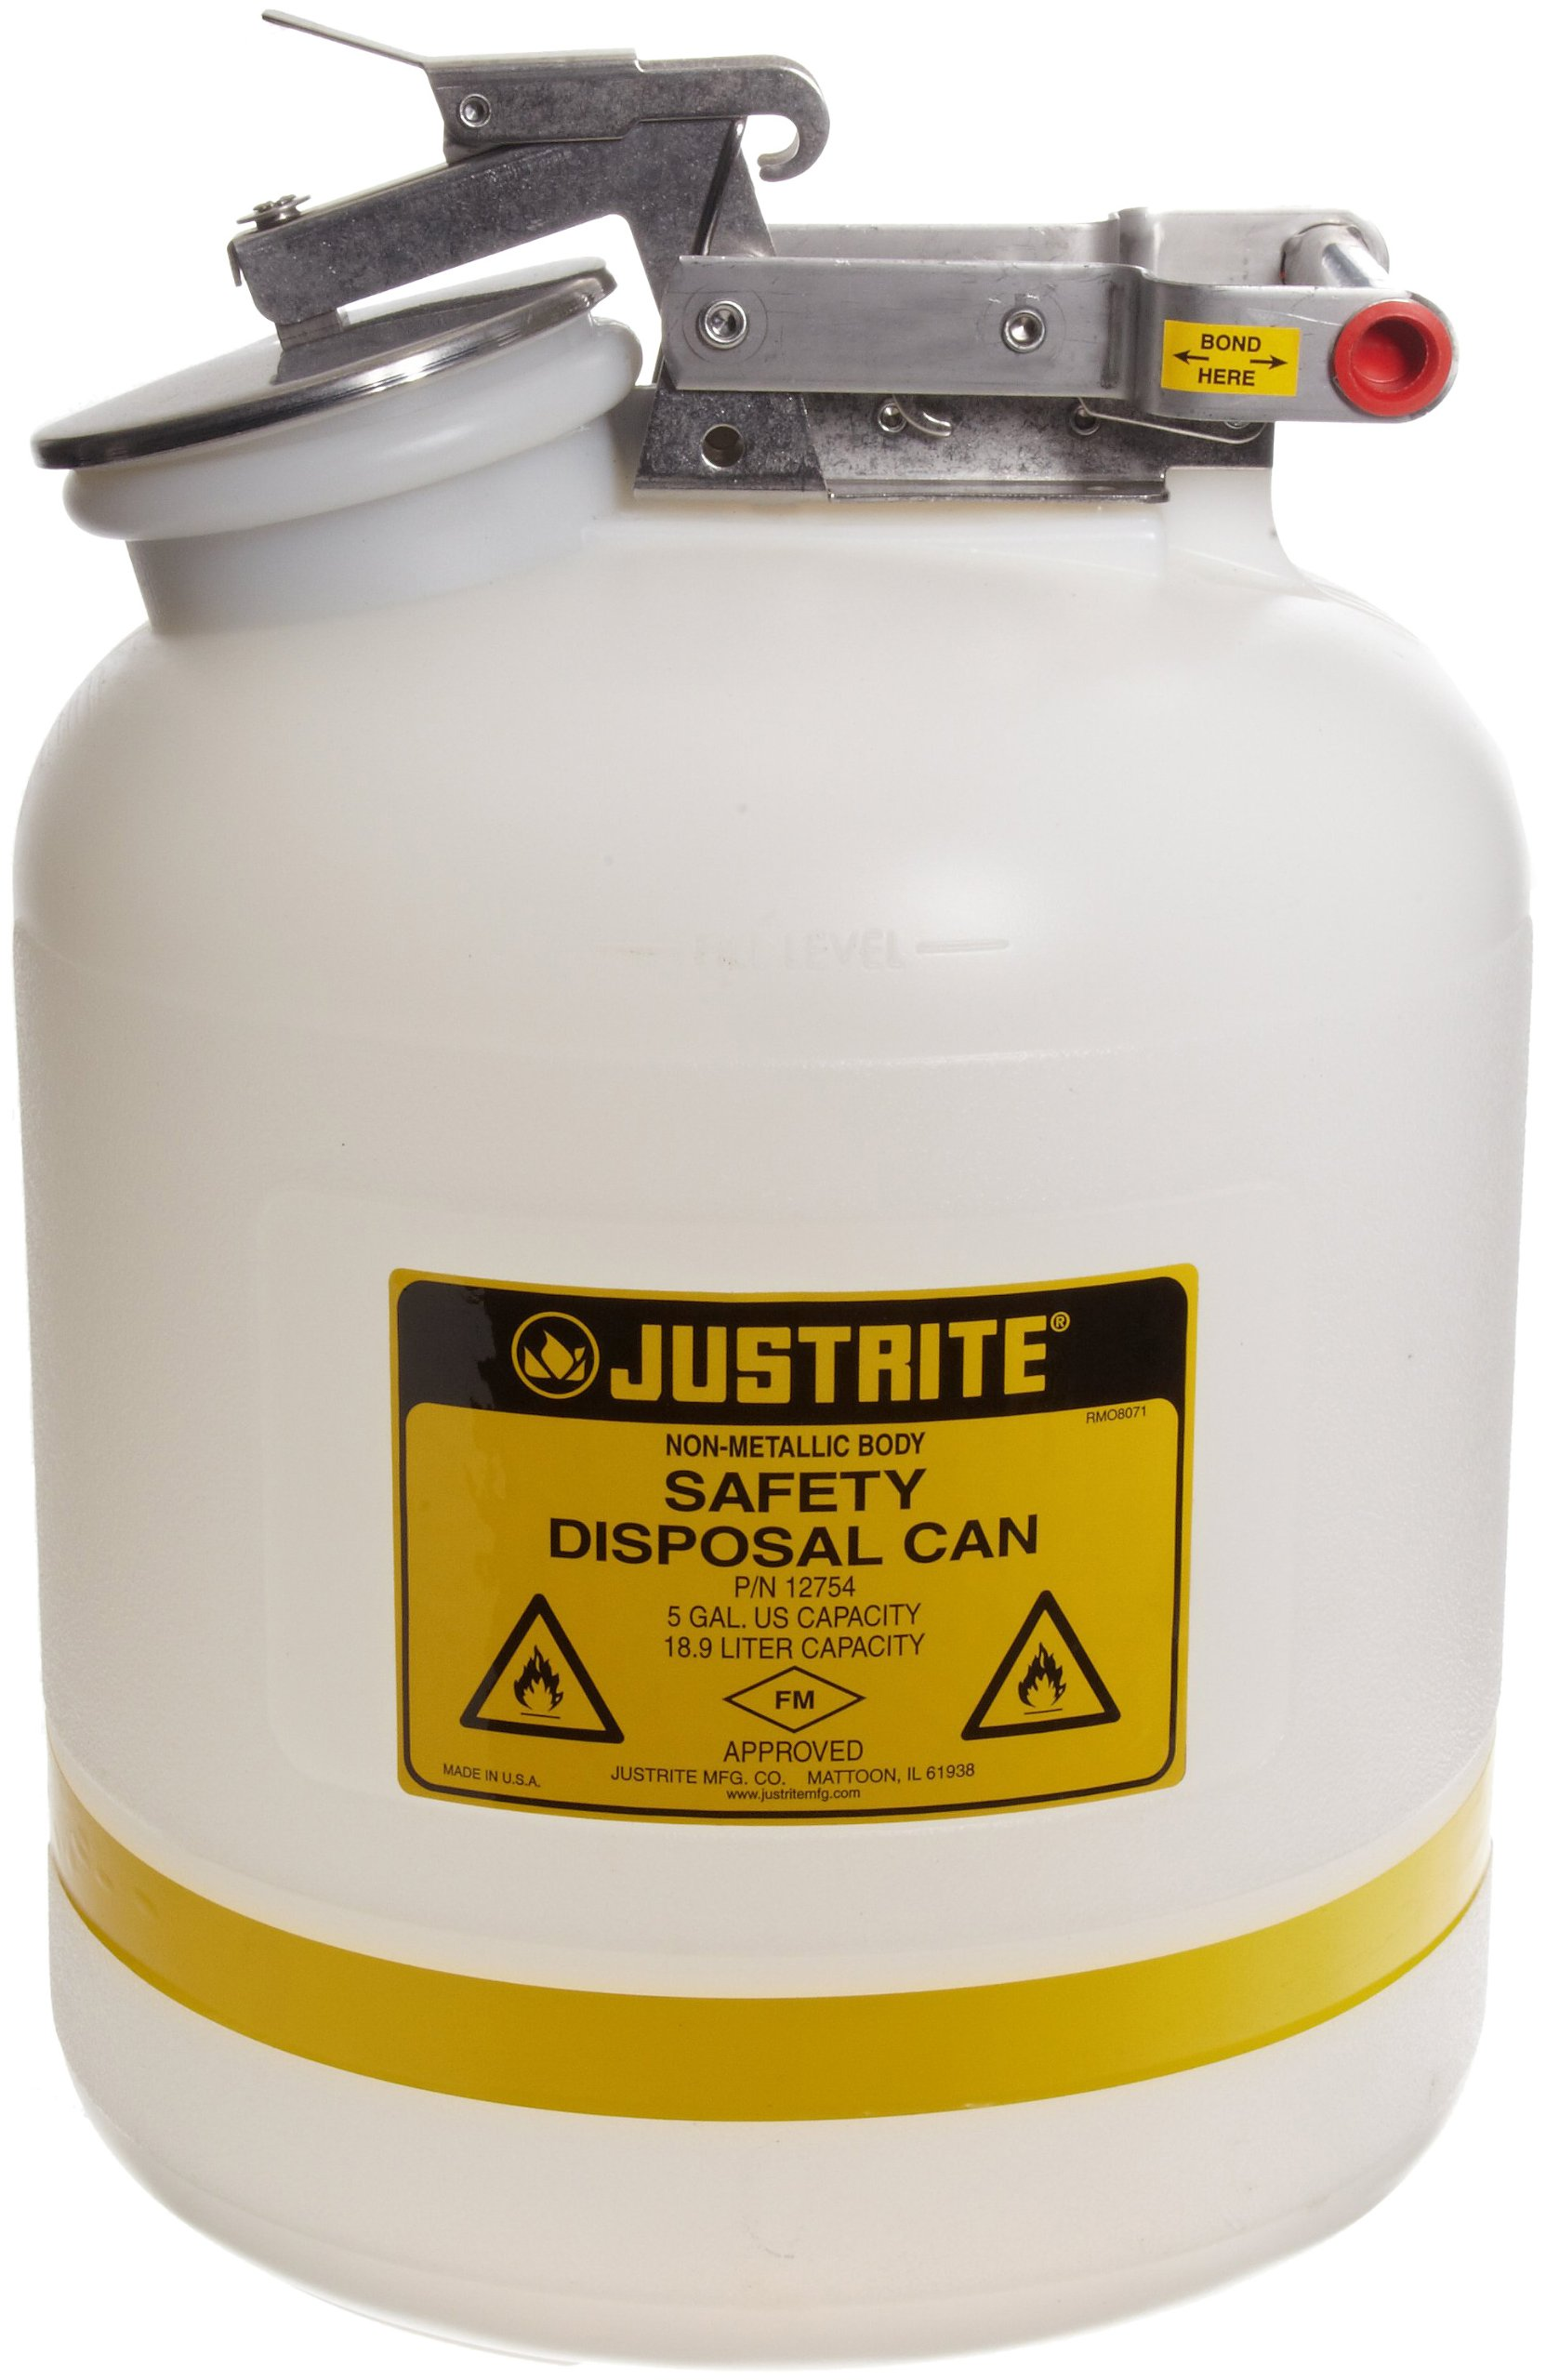 Justrite 12754 5 Gallon Capacity, 12.00'' O.D x 20'' H Size Laboratory Cans For Corrosives